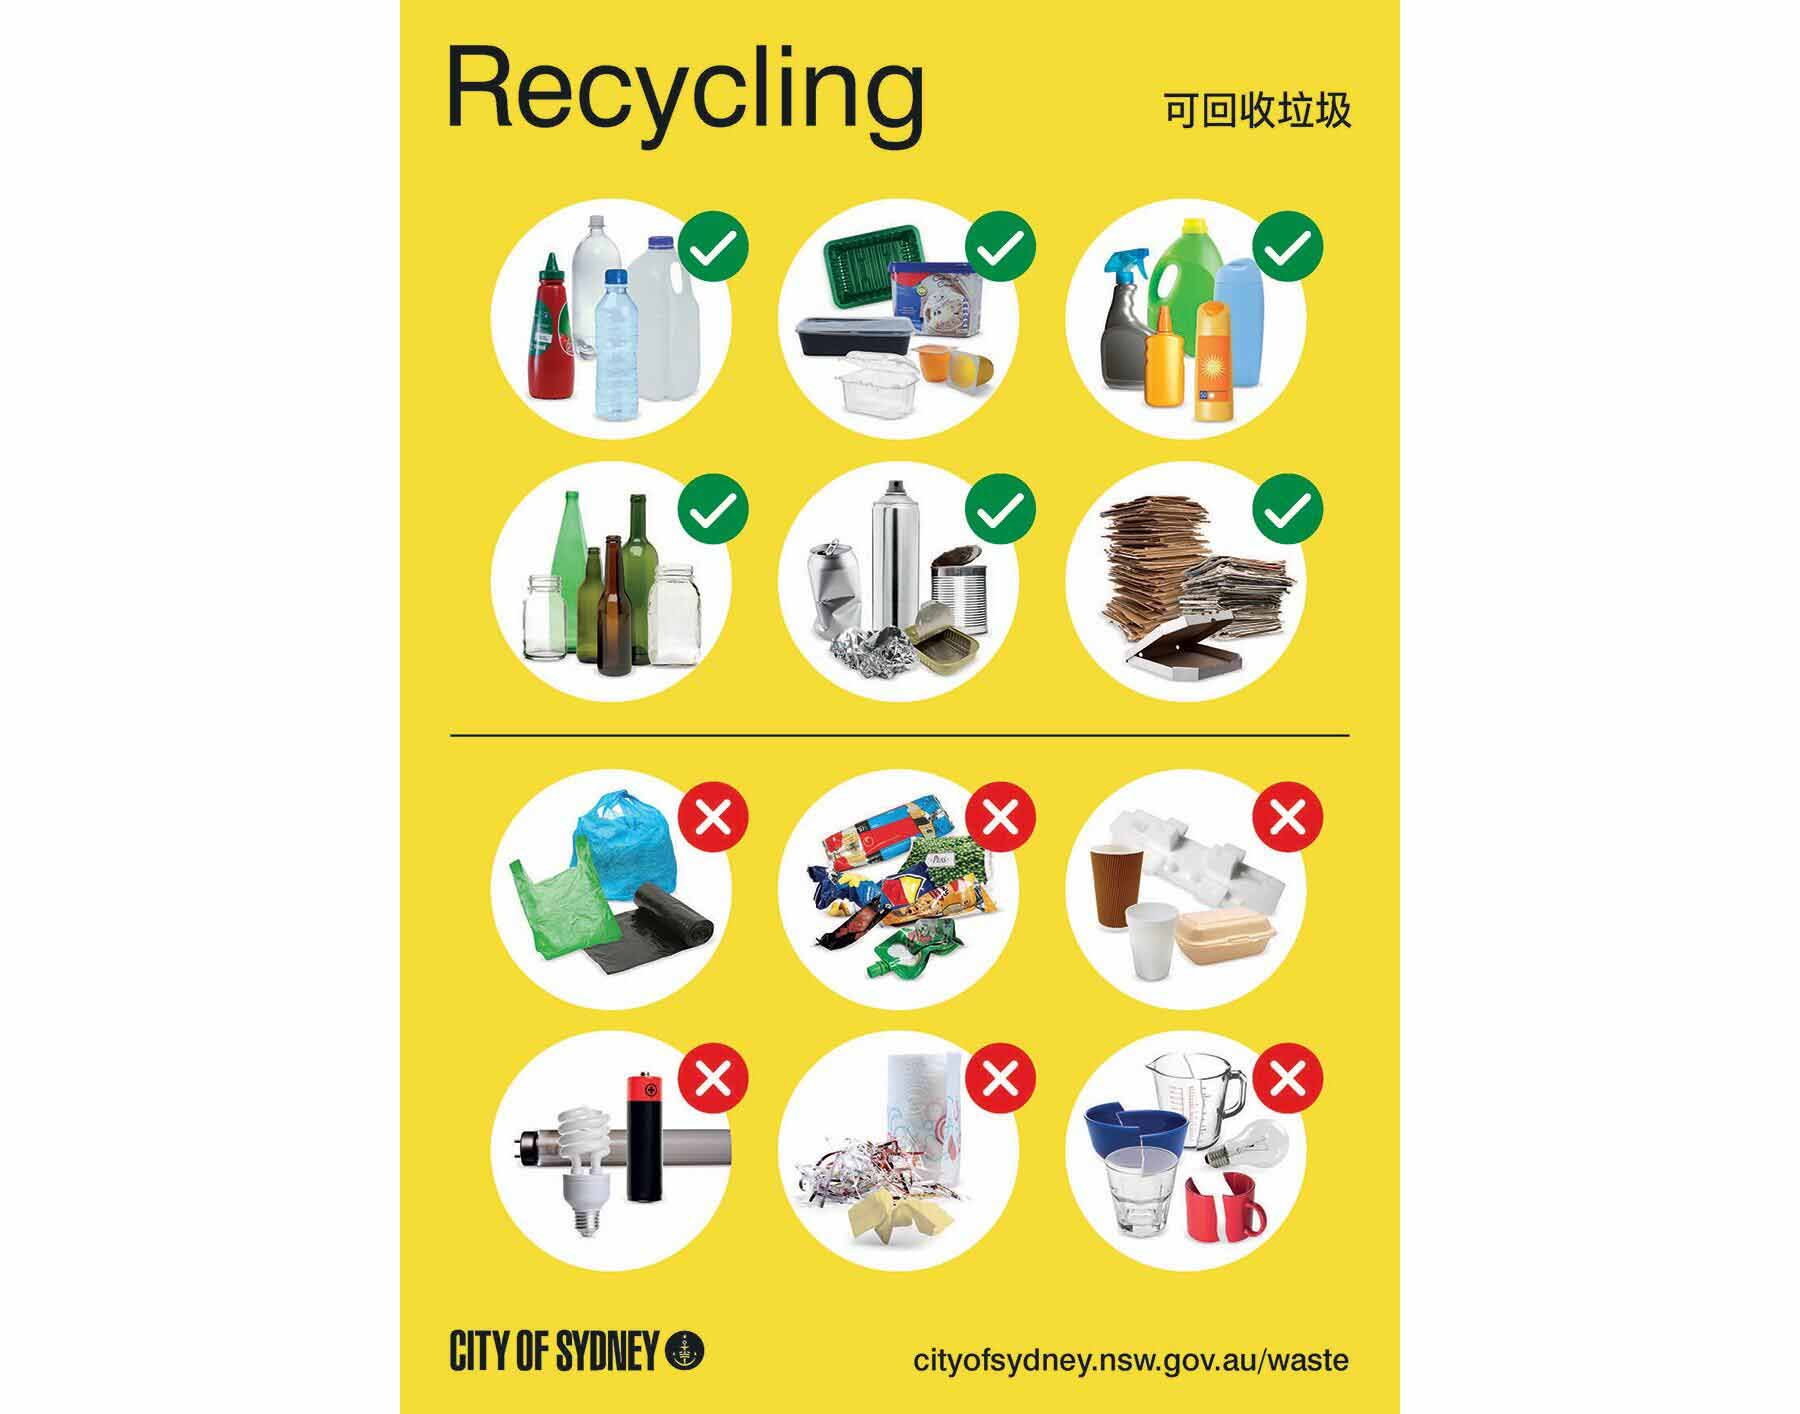 Recycling 101 - What Can You Recycle?